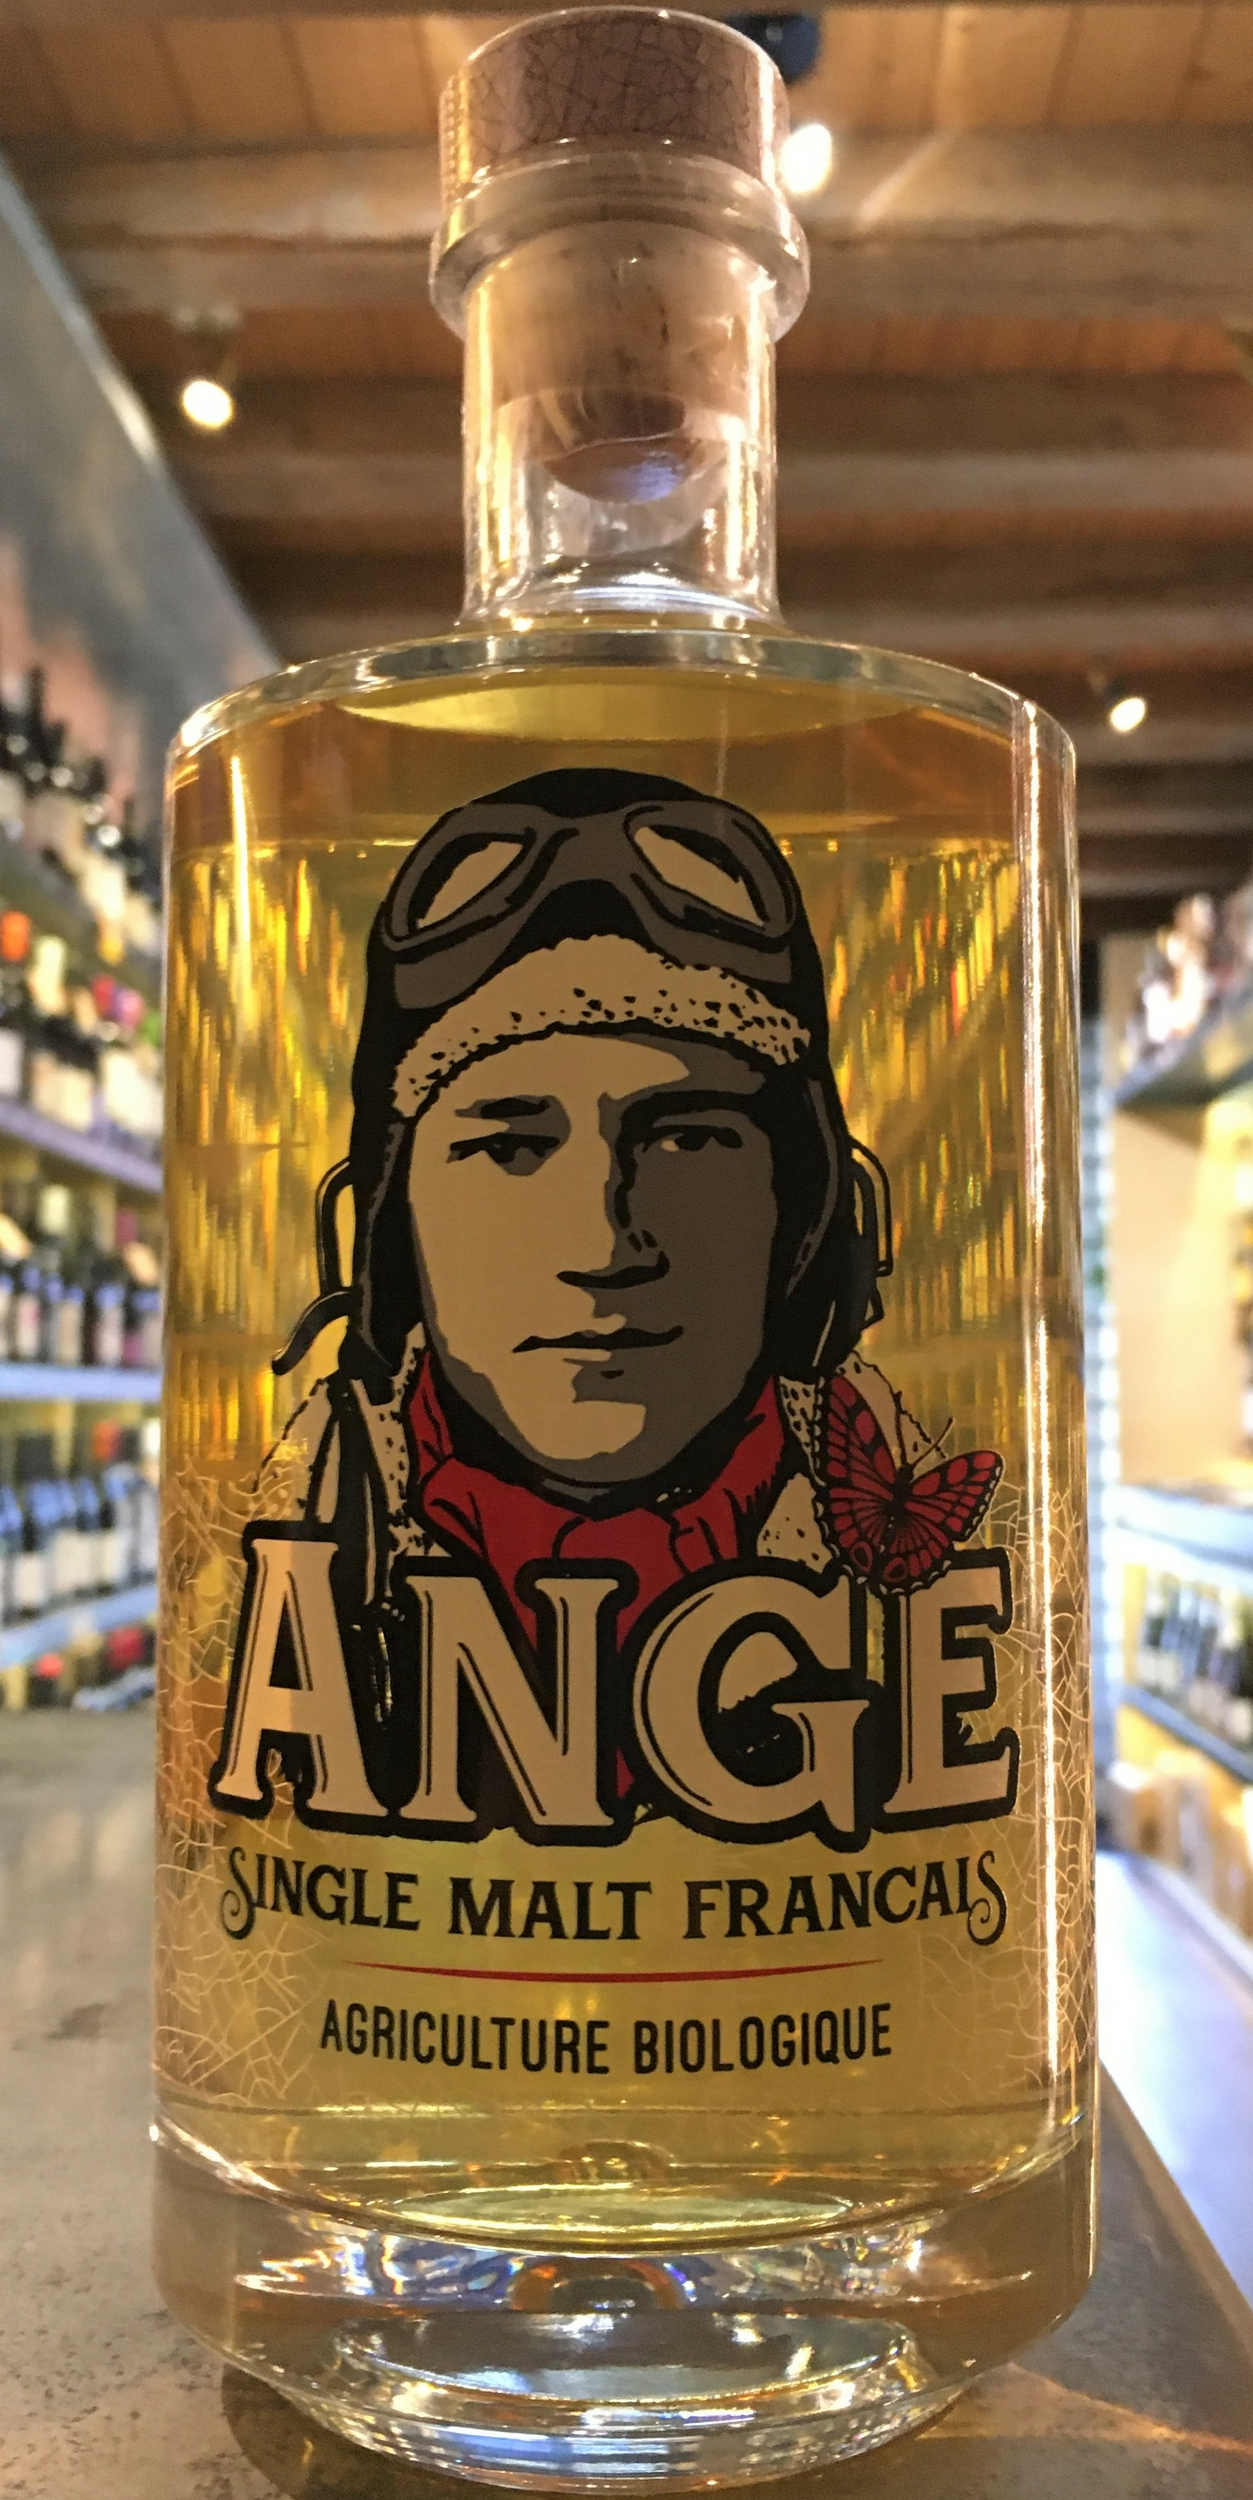 Ange Single Malt